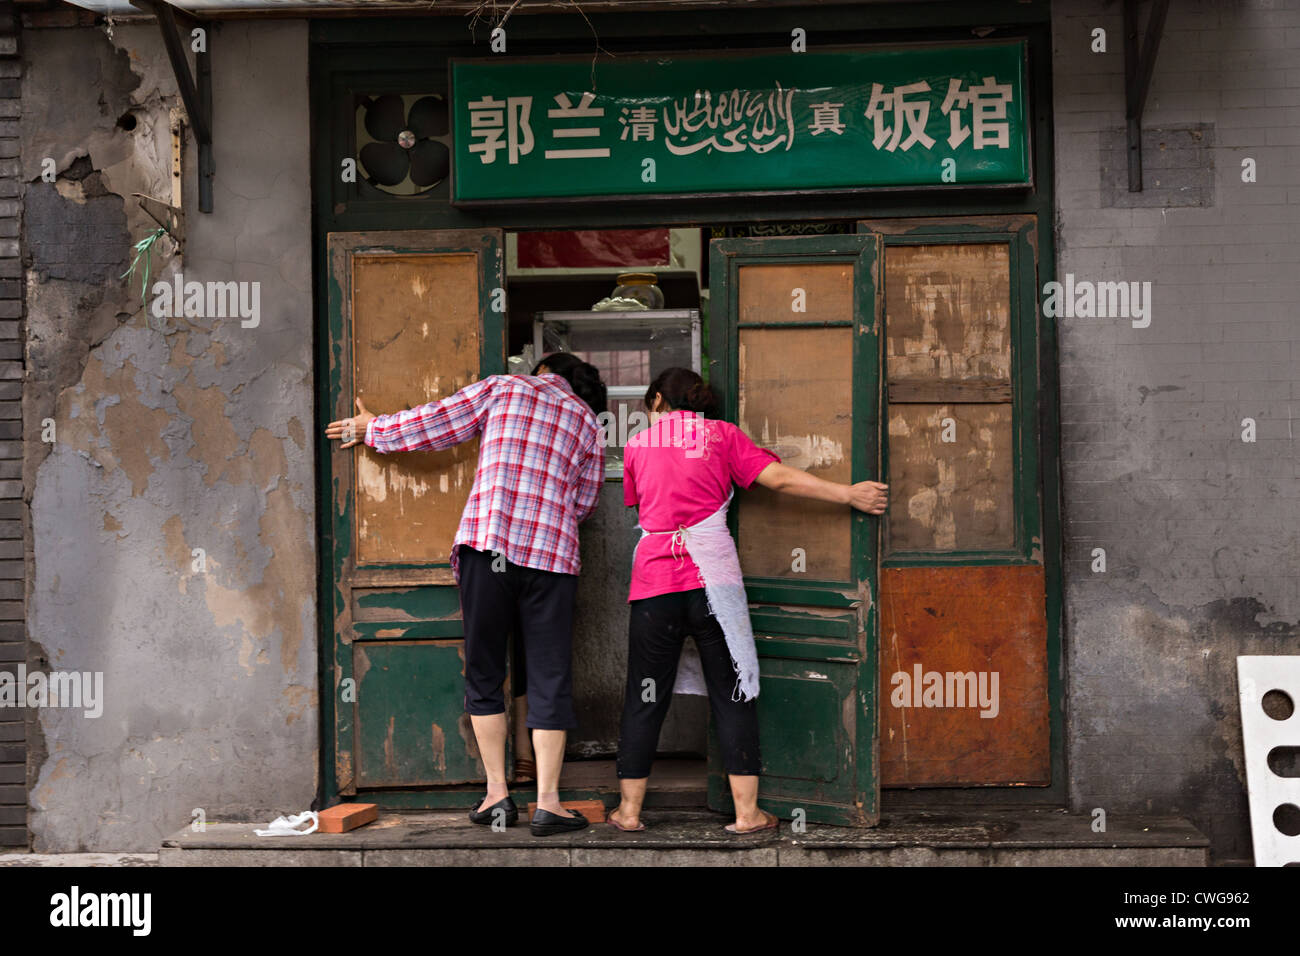 Two women close up their traditional shop along a hutong in Beijing, China - Stock Image